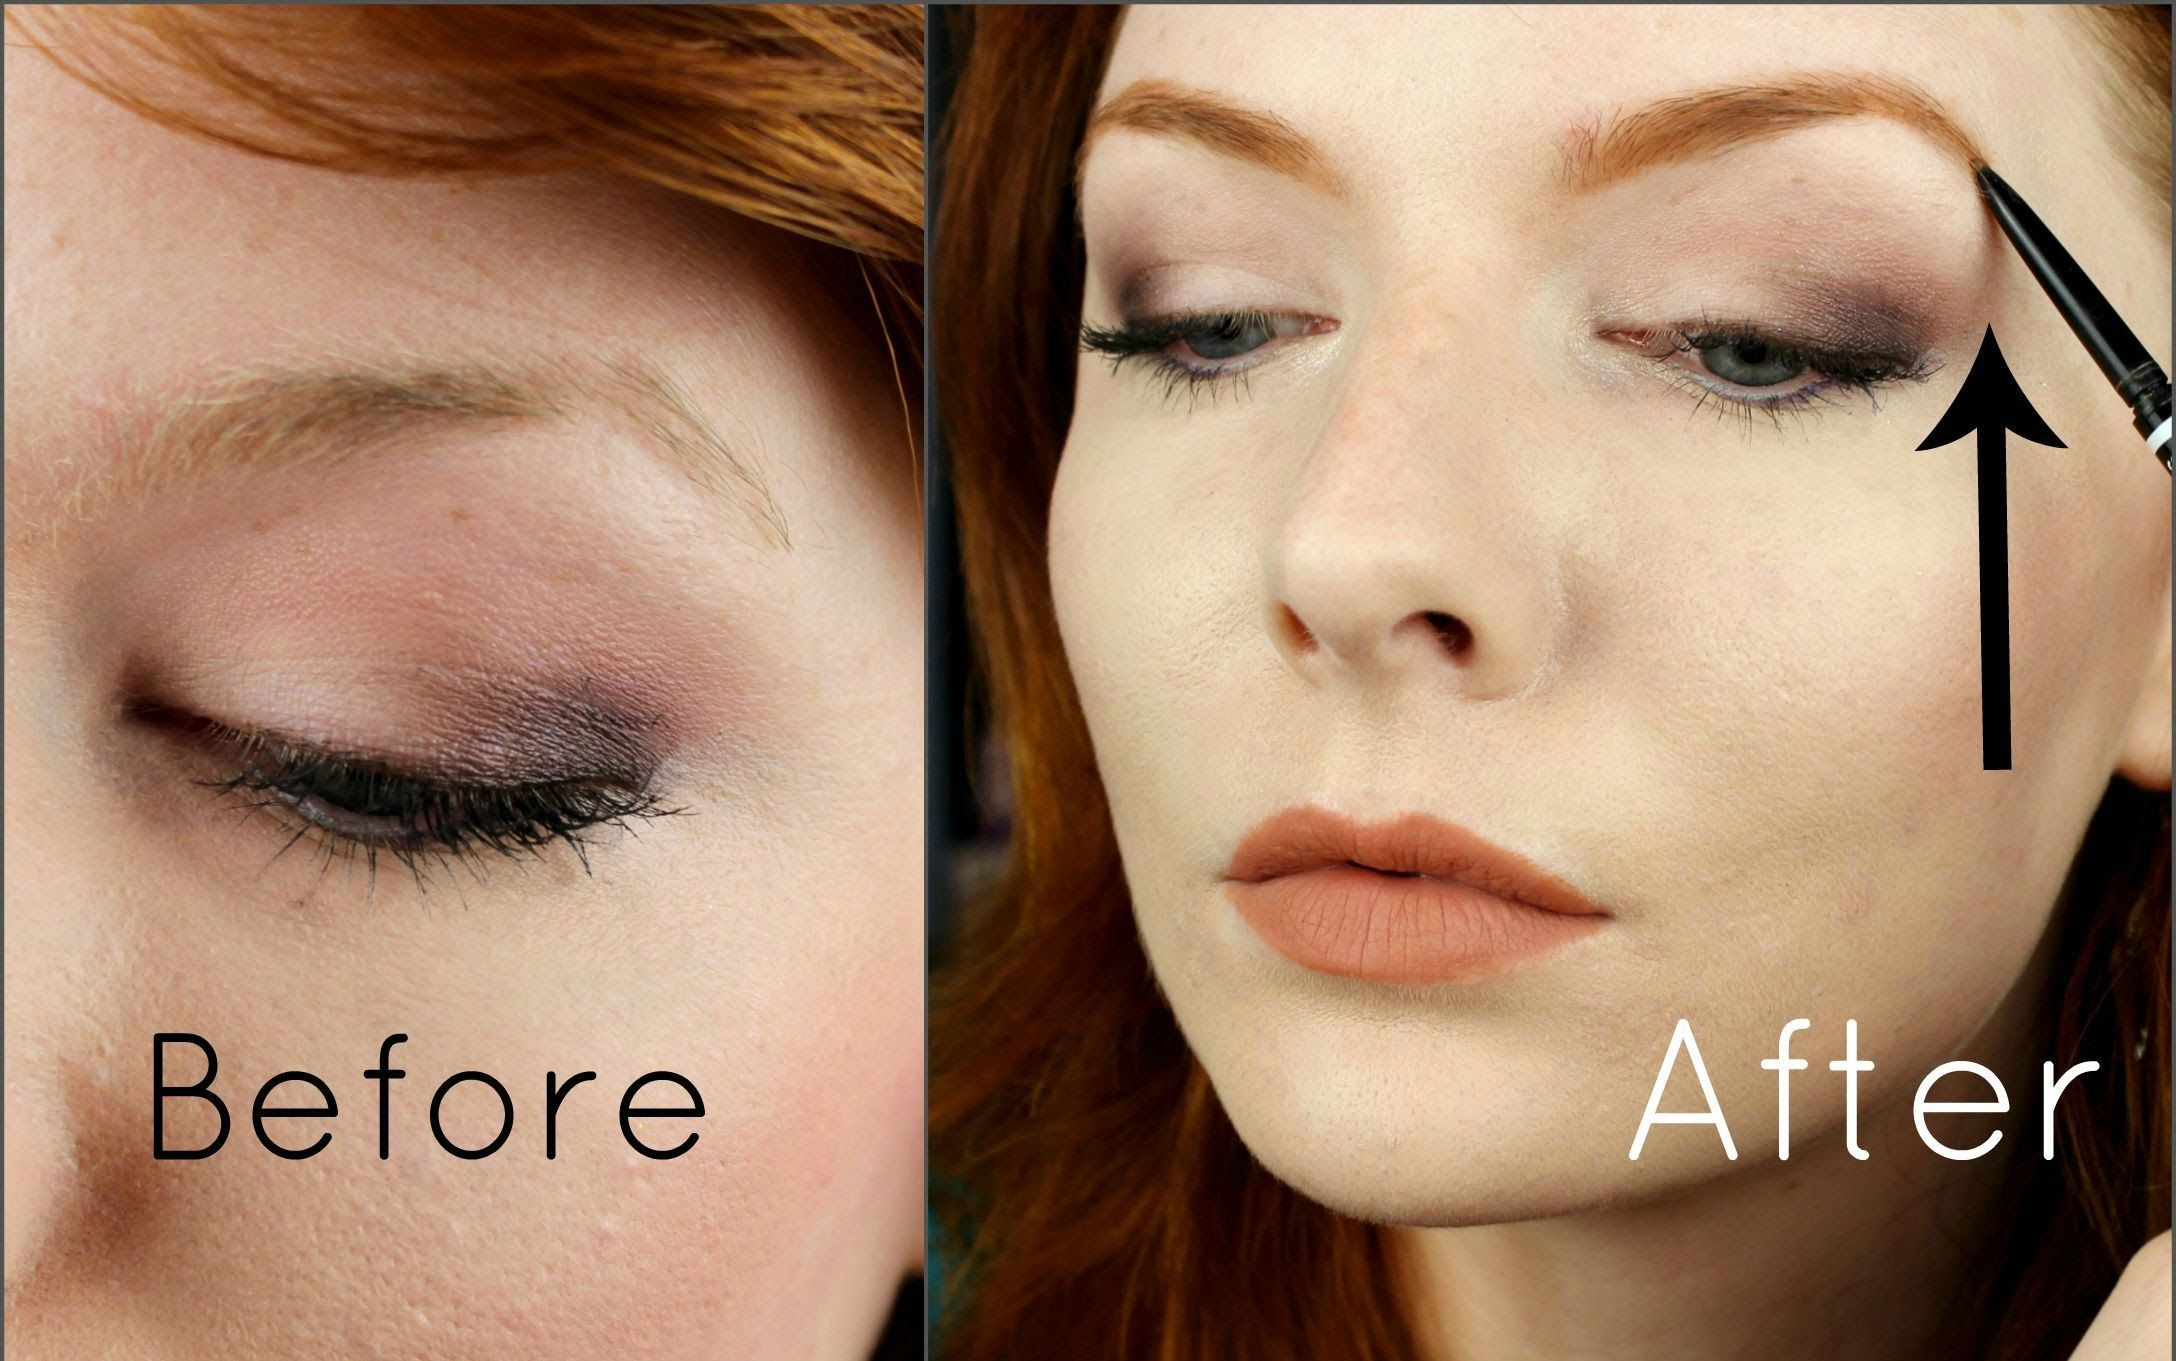 Redhead eyebrow tutorial using nyx microbrow dupe for anastasia redhead eyebrow tutorial using nyx microbrow dupe for anastasia brow wiz baditri Images